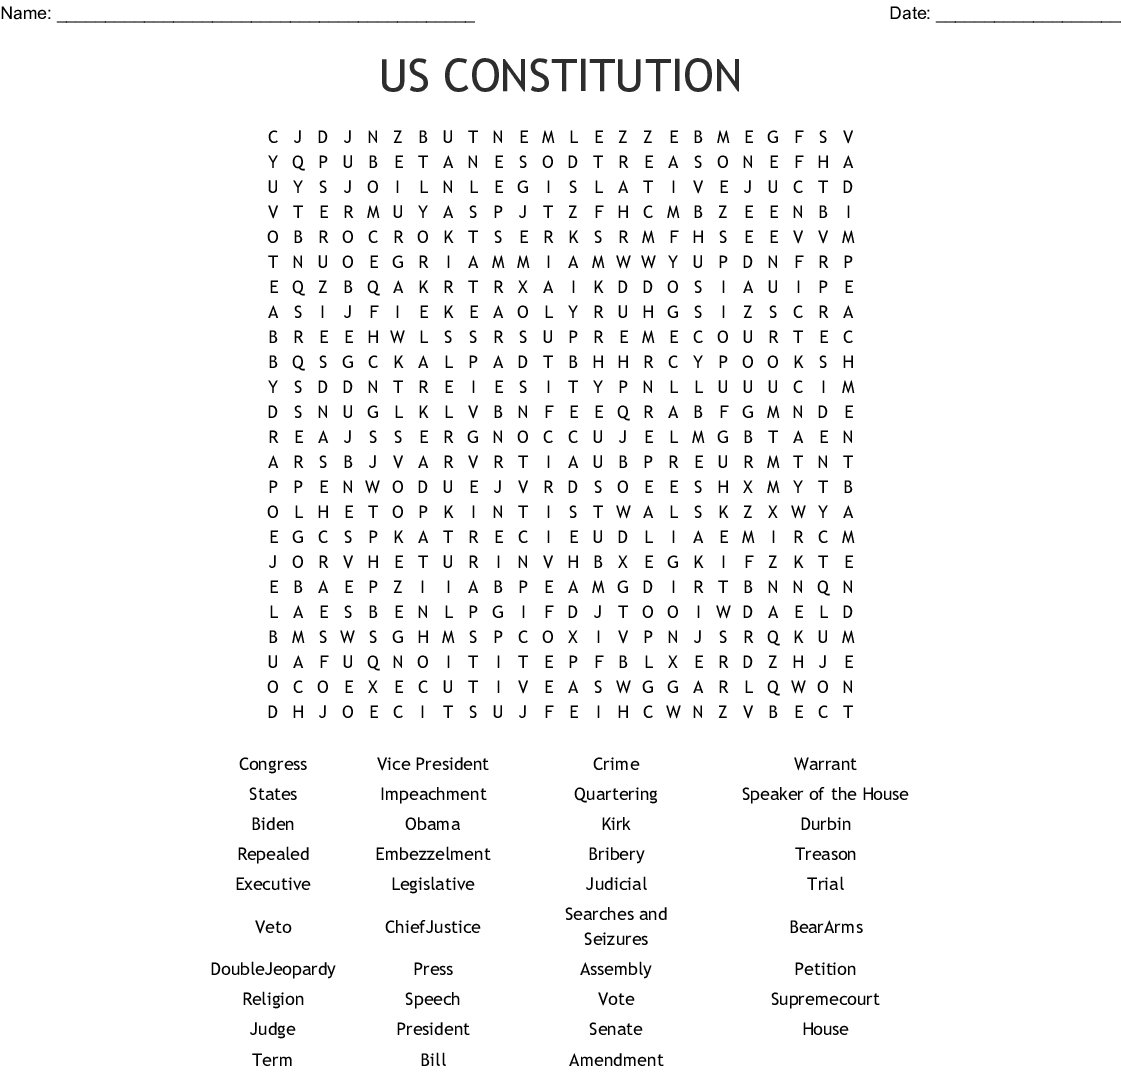 Free Printable Us Constitution Worksheets